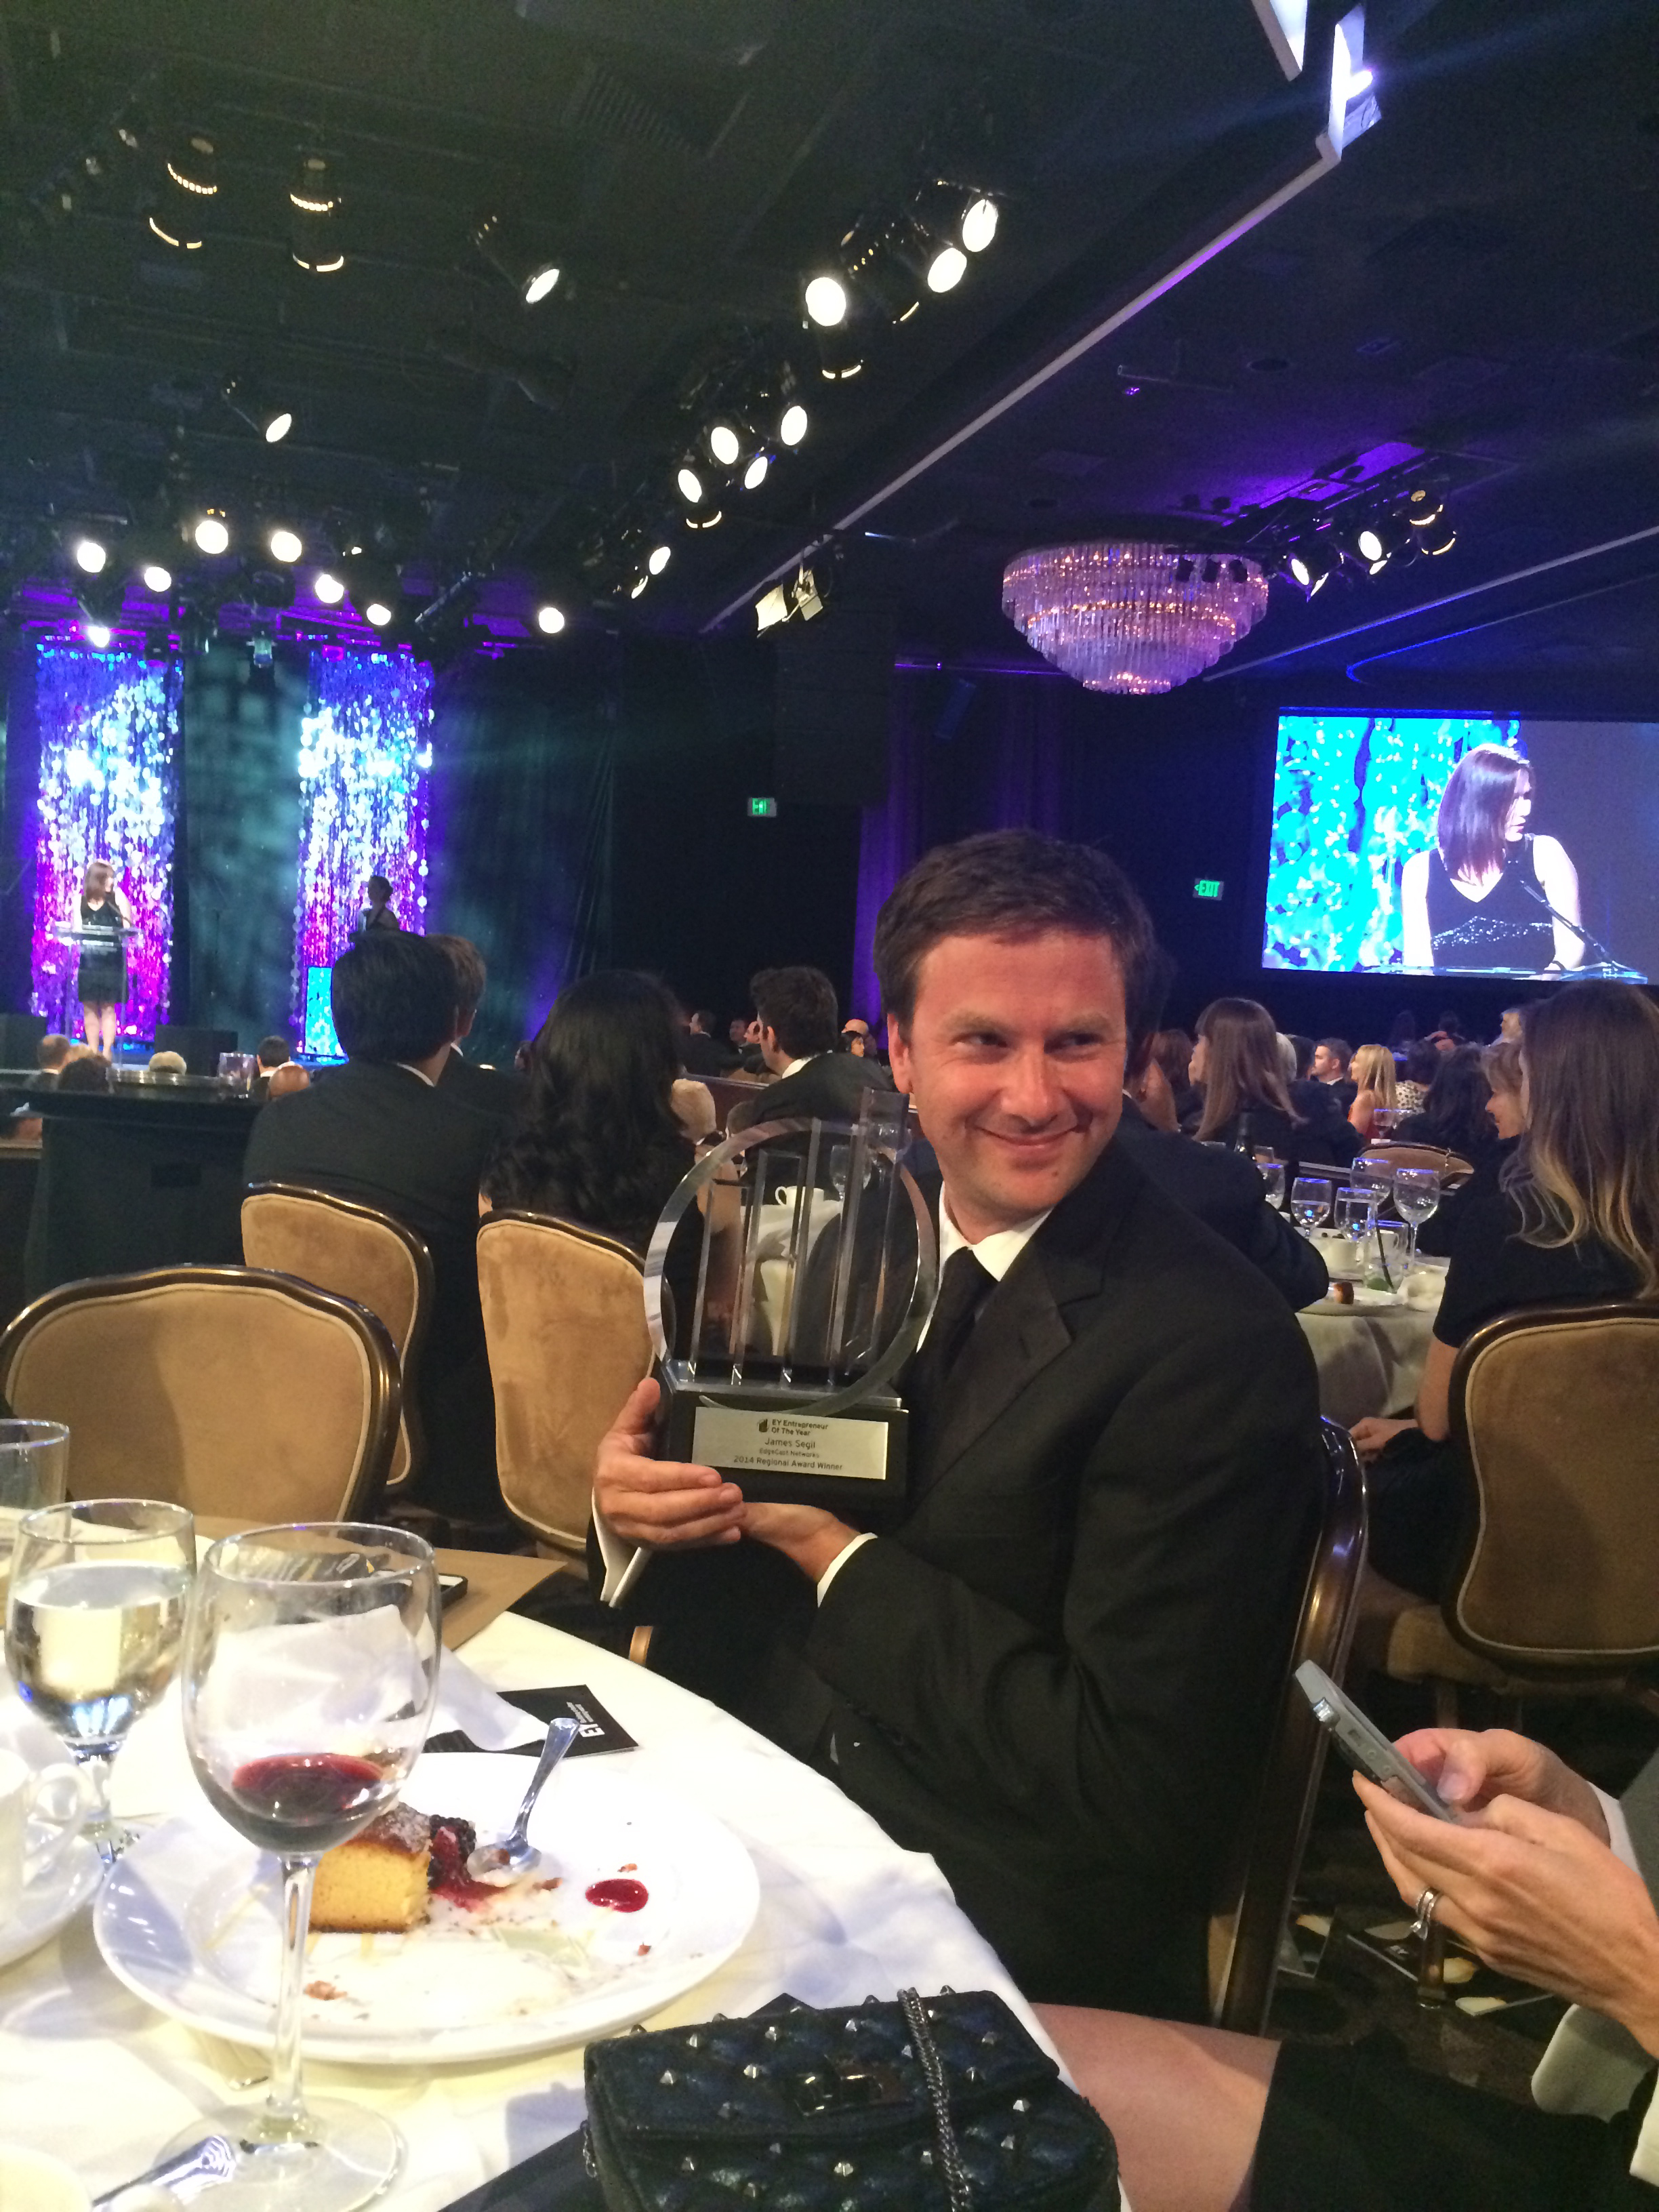 James winning EY award for LA 2014